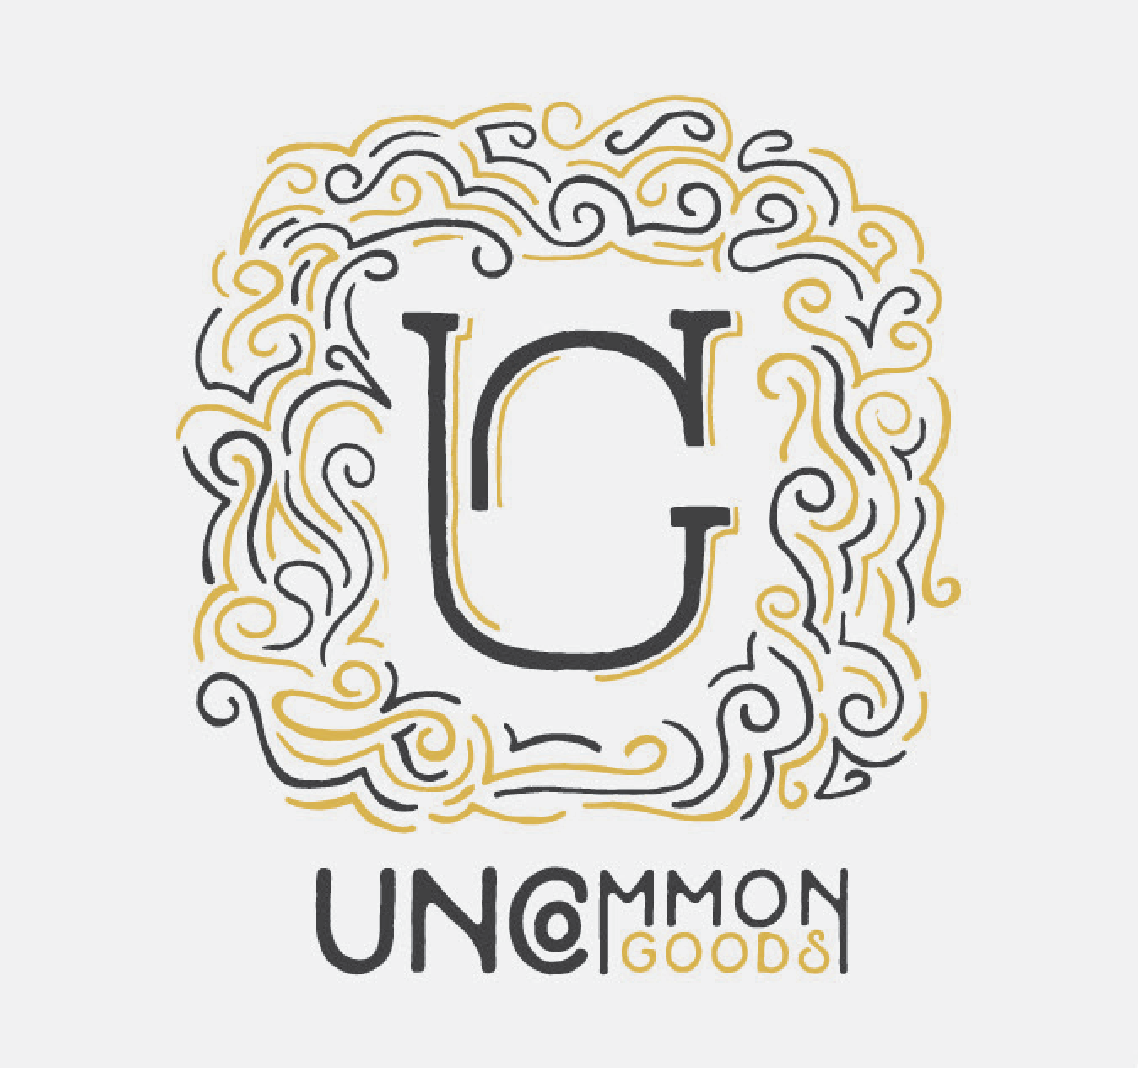 Uncommon Goods | Student Work - Branding, Design